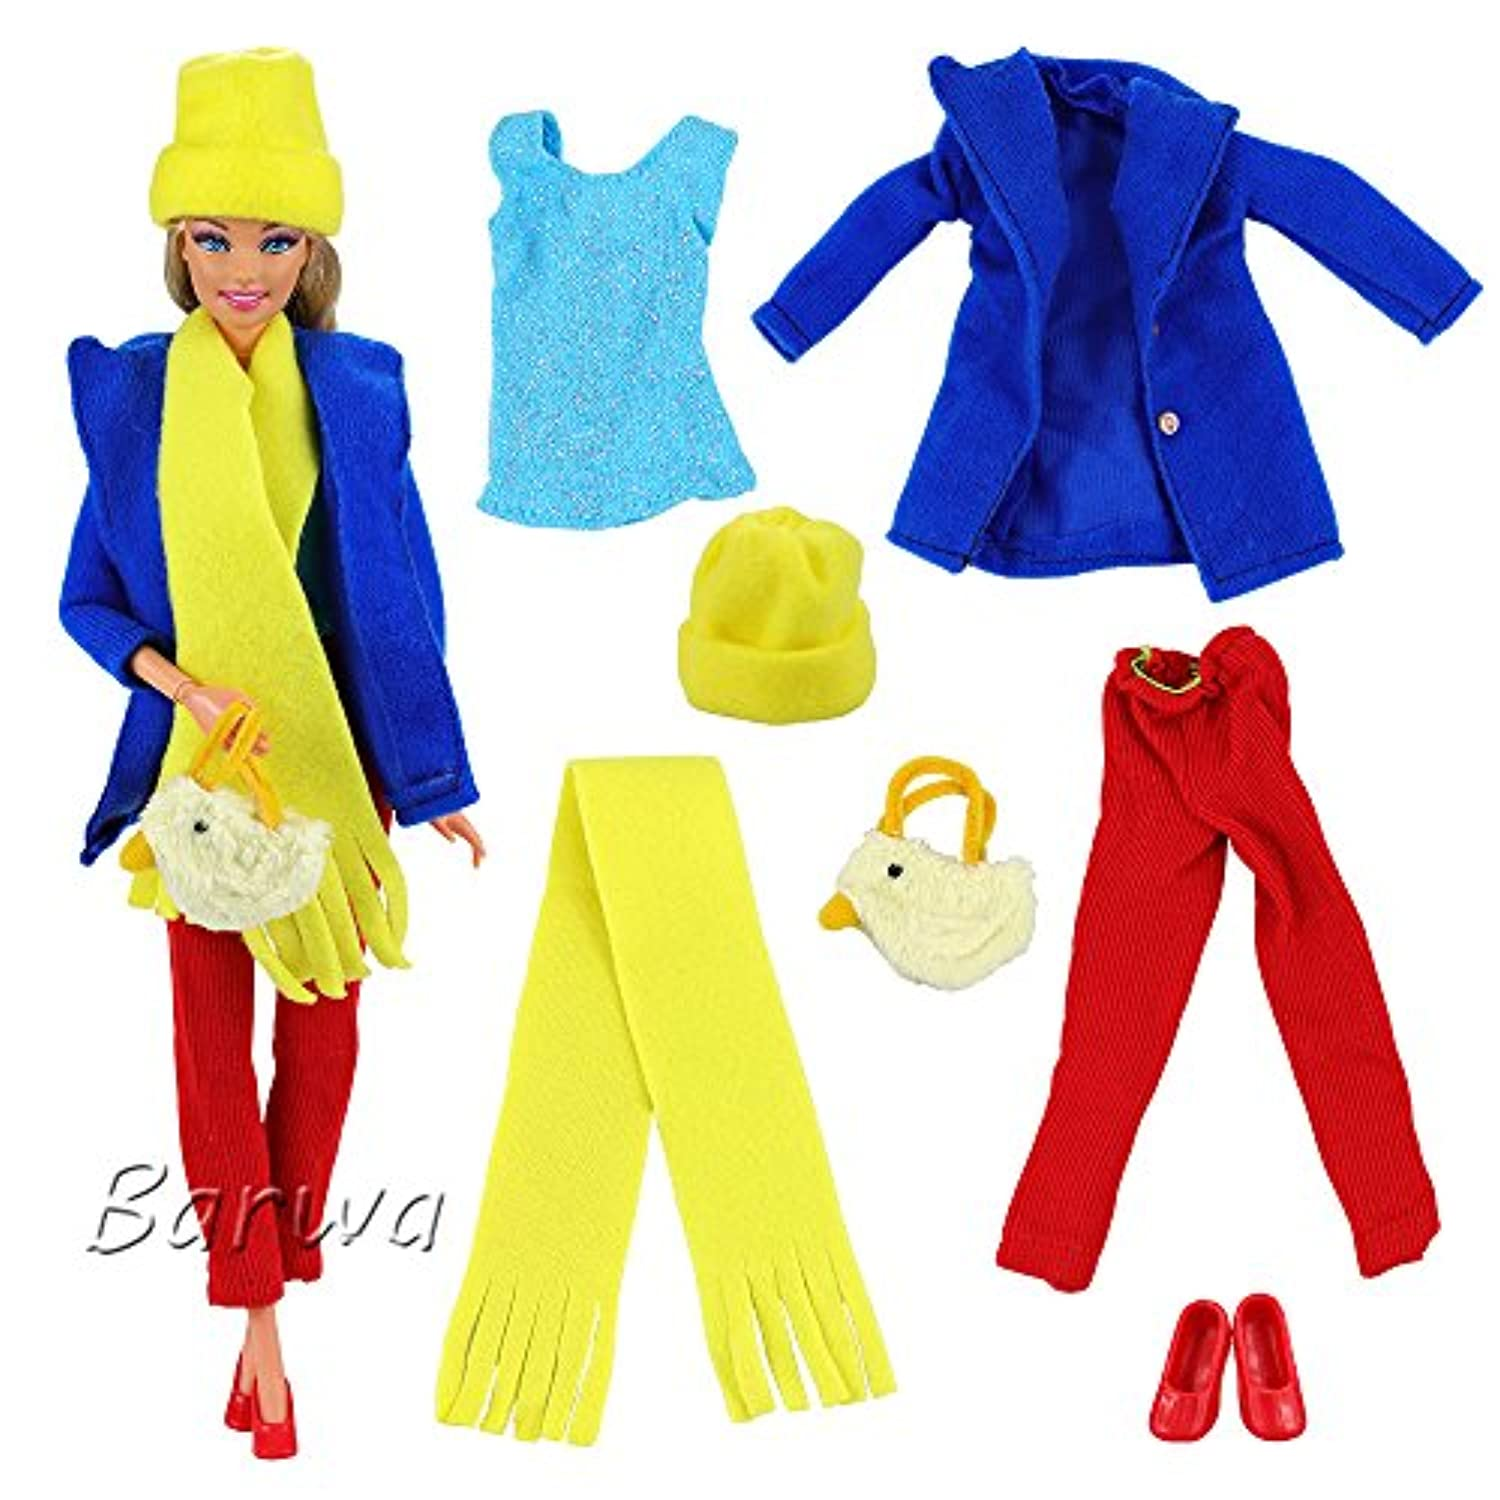 Barwa Barbie Doll Casual Clothes Outfits Accessories Lot for Girls Blue Coat Shirt Red Pants with Shoes Scarf Hat and Handbag